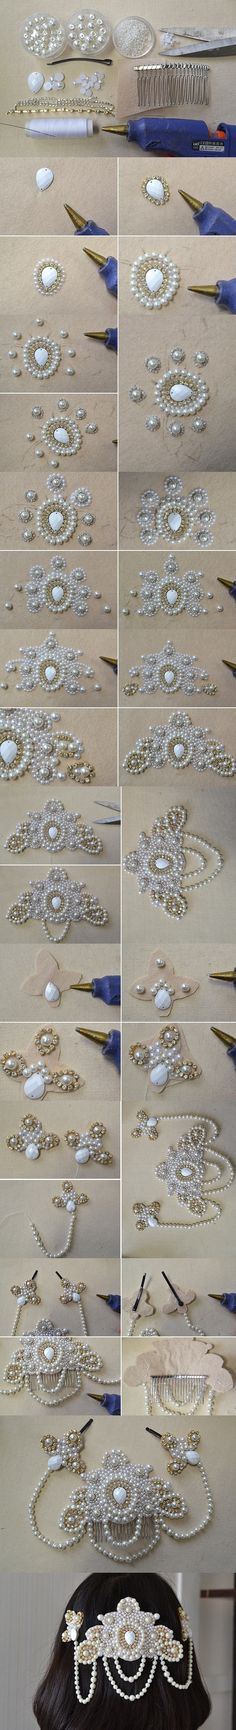 Tutorial on How to Make a Bridal Comb Headpiece - A Fashionable Design for Bride from LC.Pandahall.com                    #pandahall